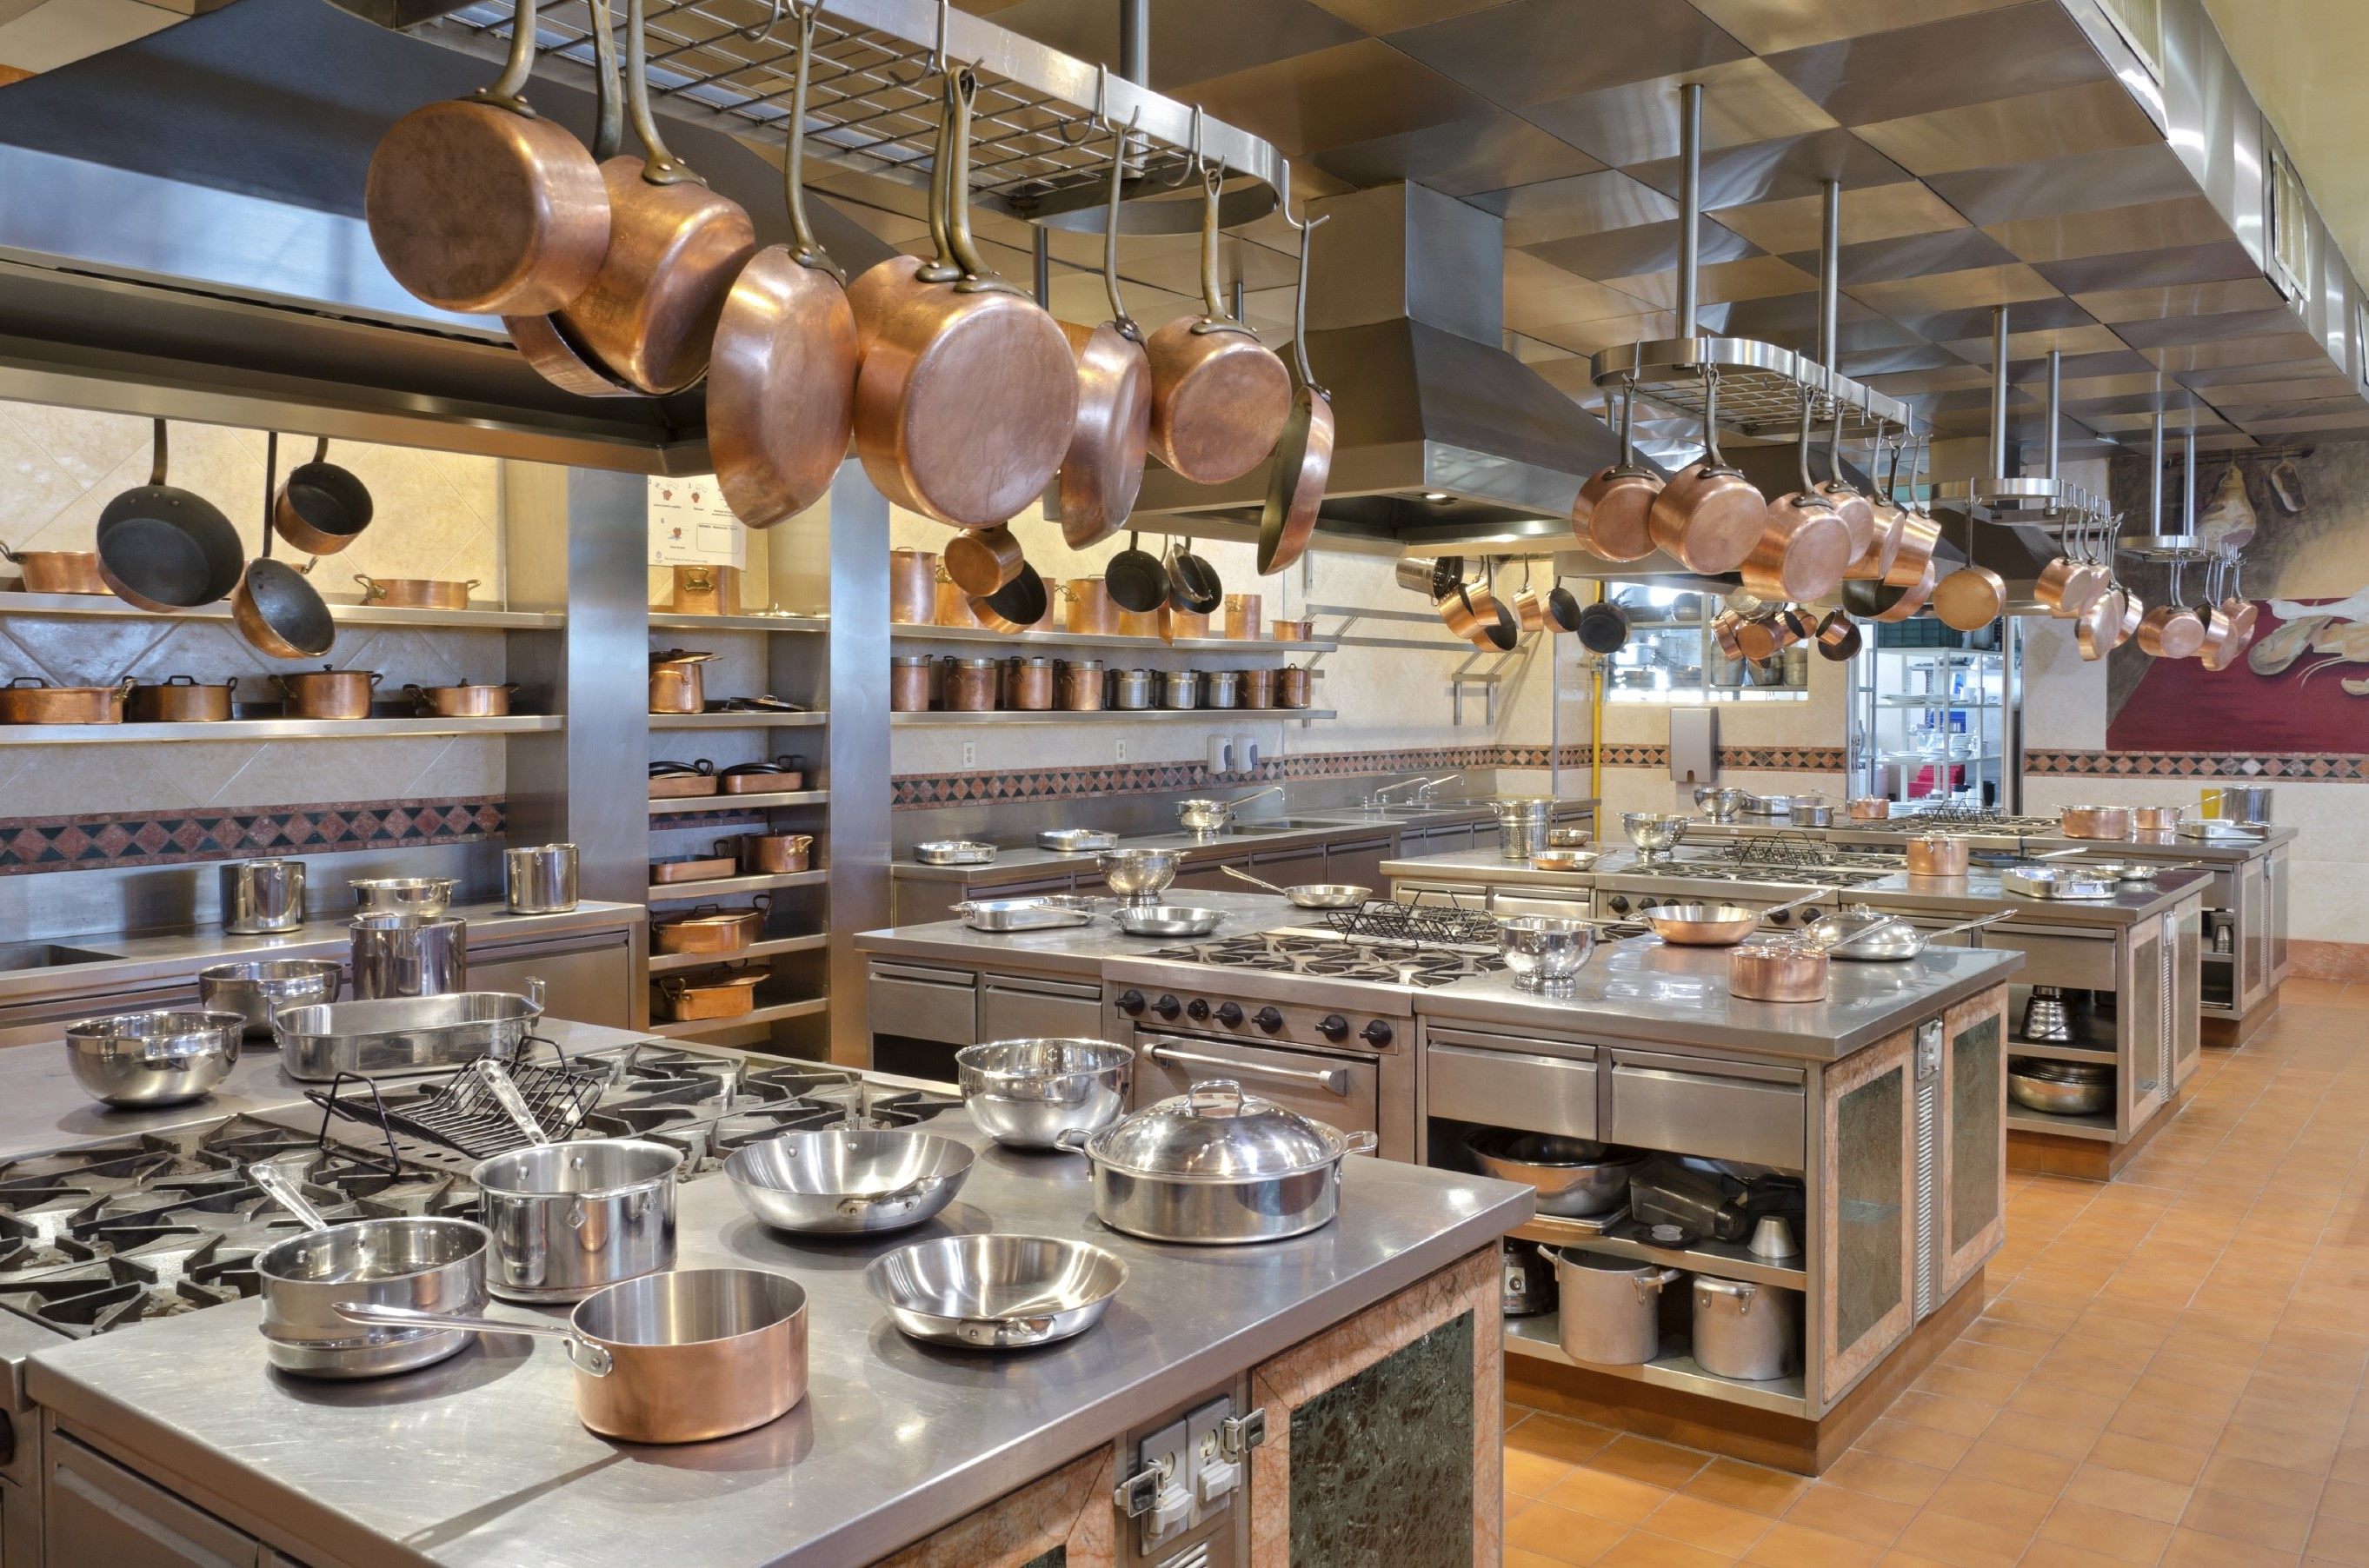 Definitive Guide to Purchasing Commercial Kitchen Equipment Online